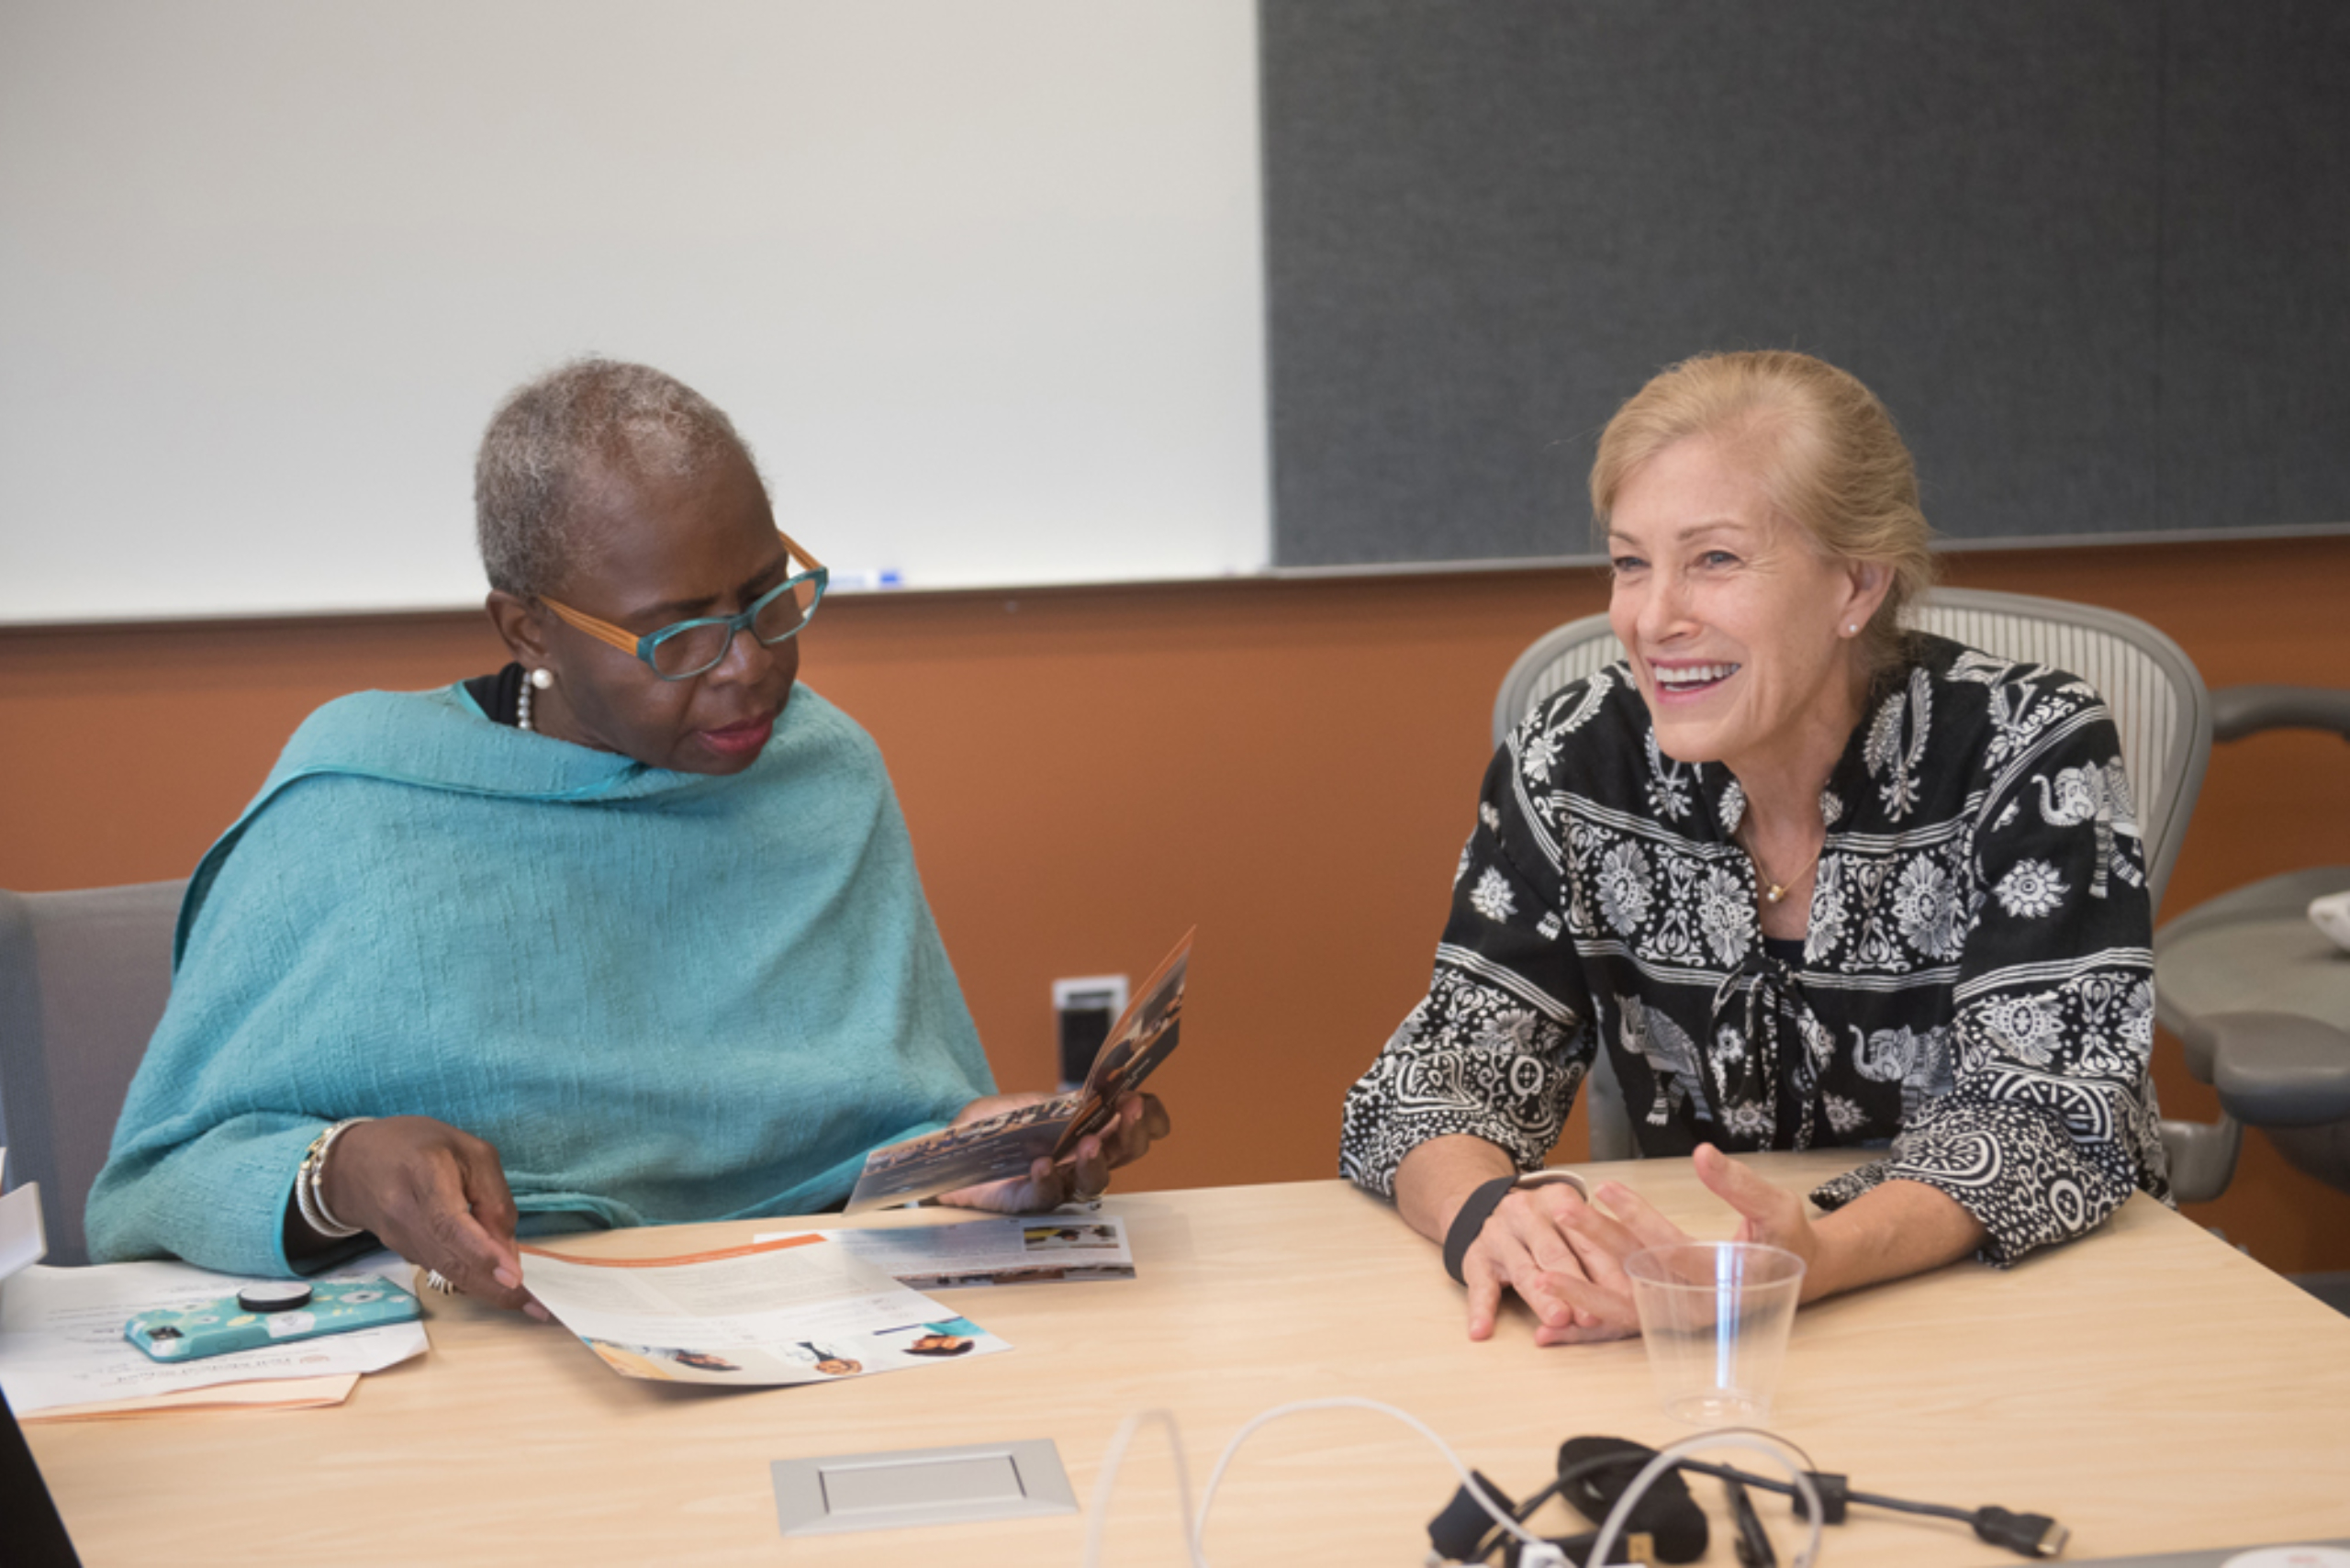 Elizabeth Teisberg reviews material with a participant during the Musculoskeletal Institute's Immersion Program in Value-Based Health Care.